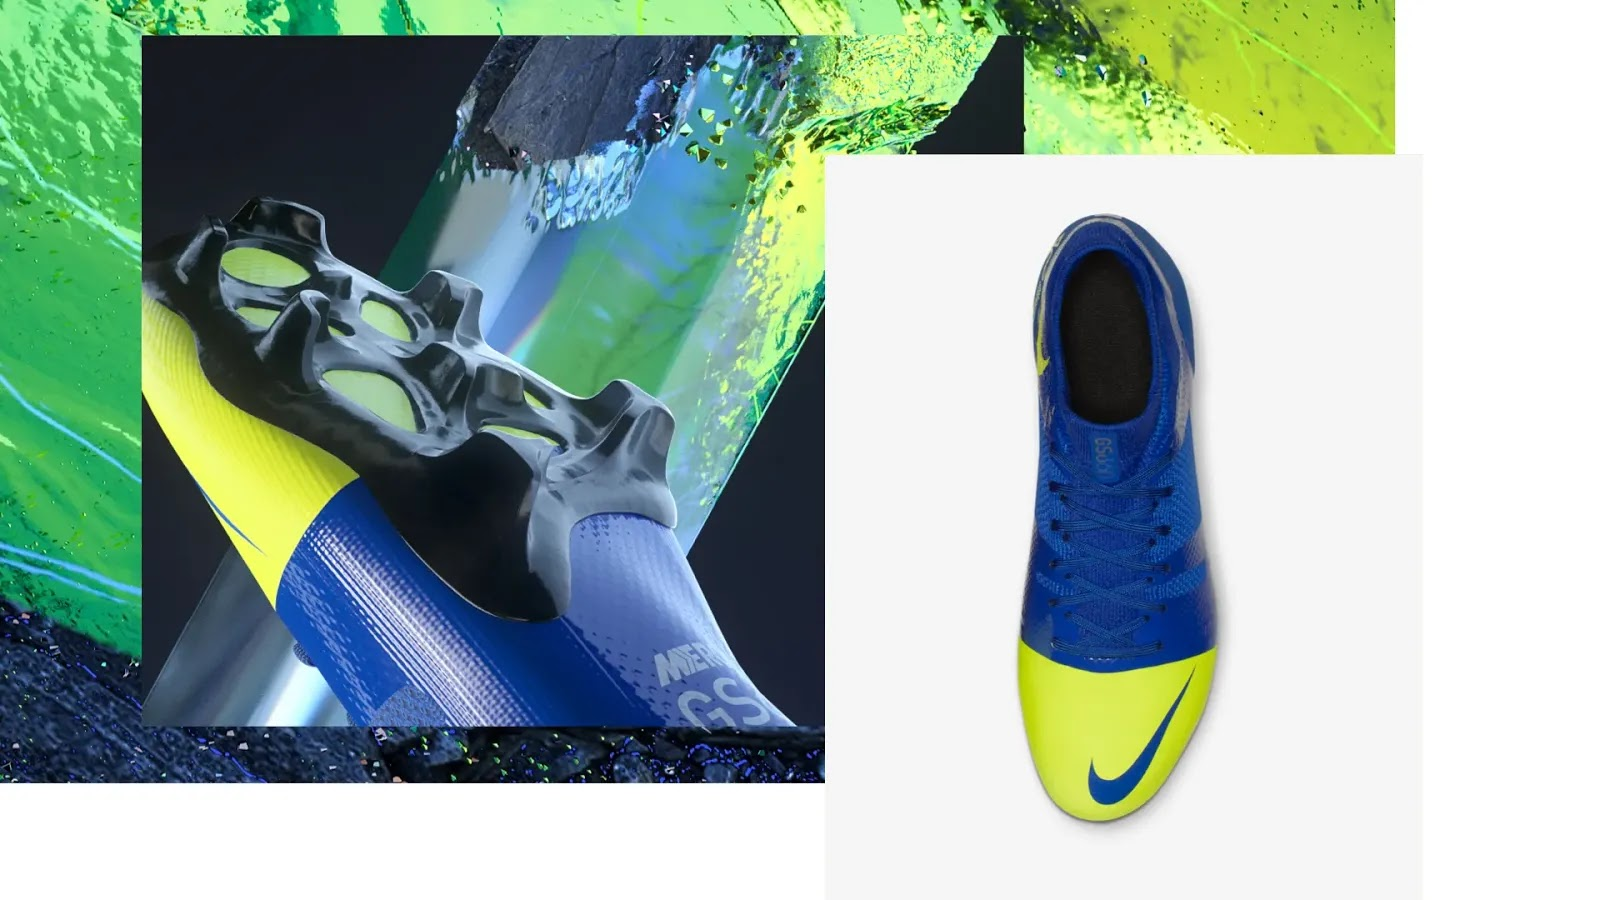 Blue / Volt Nike Mercurial GS 360 Limited-Edition iD Boots Showcased